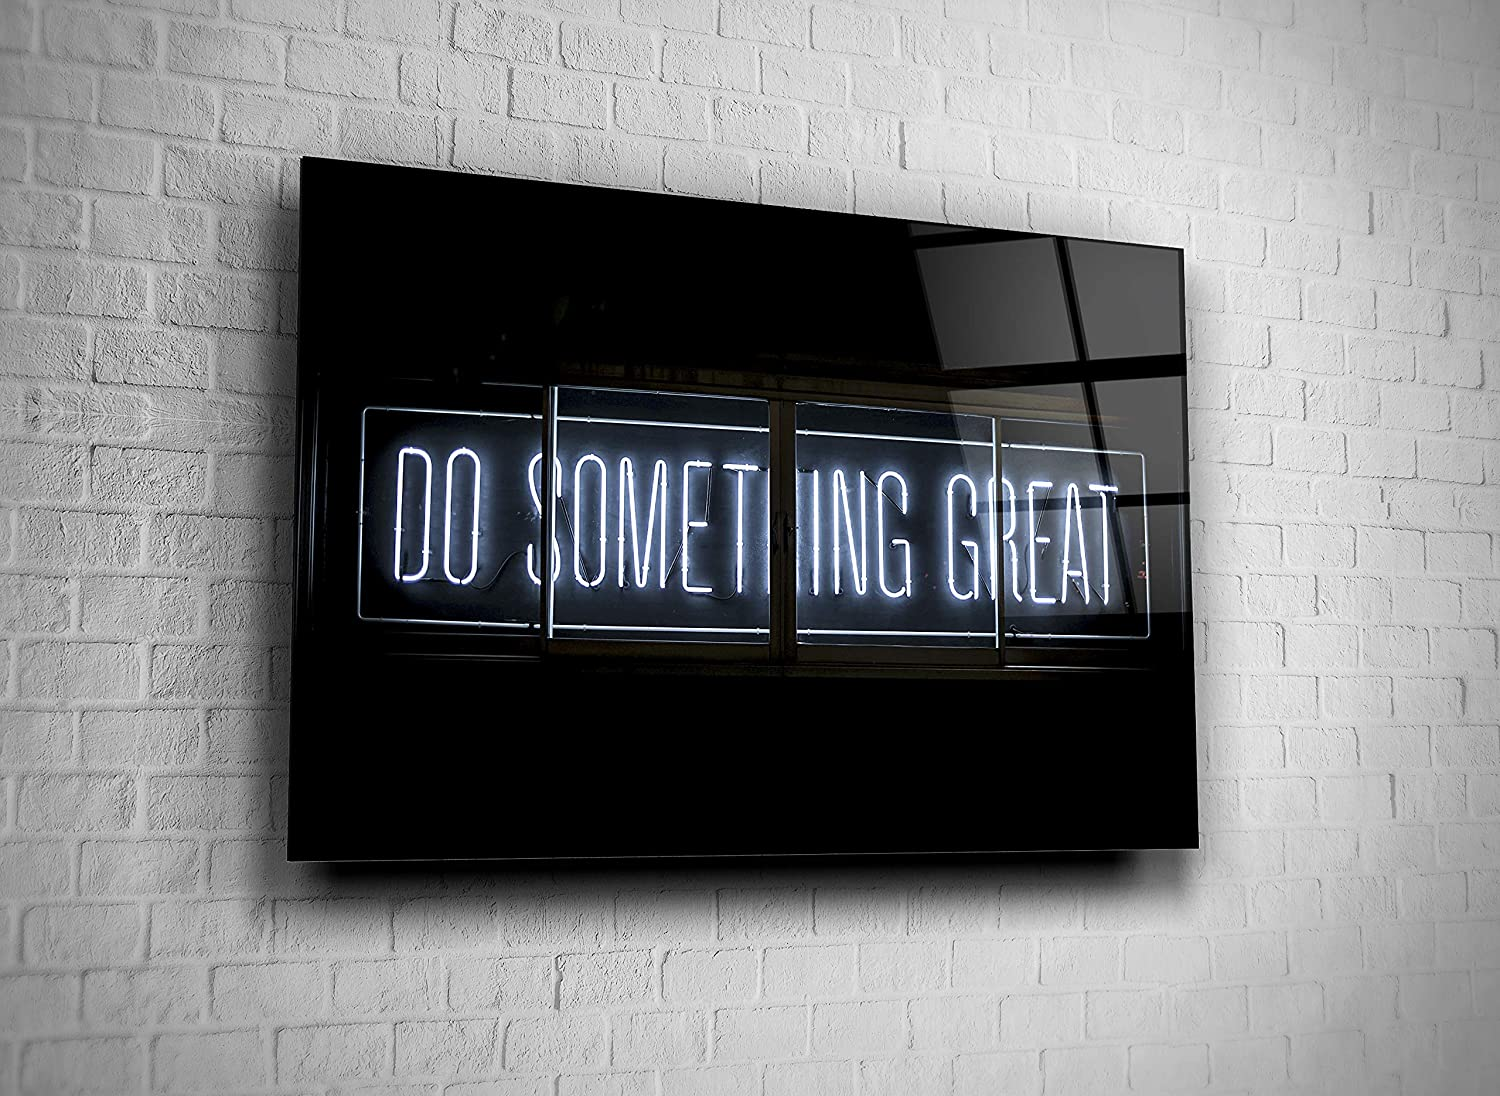 Genericc Do Something Great Neon Sign Tempered Glass Wall Art Present Home Decor Bar Decor Office Decor Hotel Decor Modern Art Decor Gift (16x24)